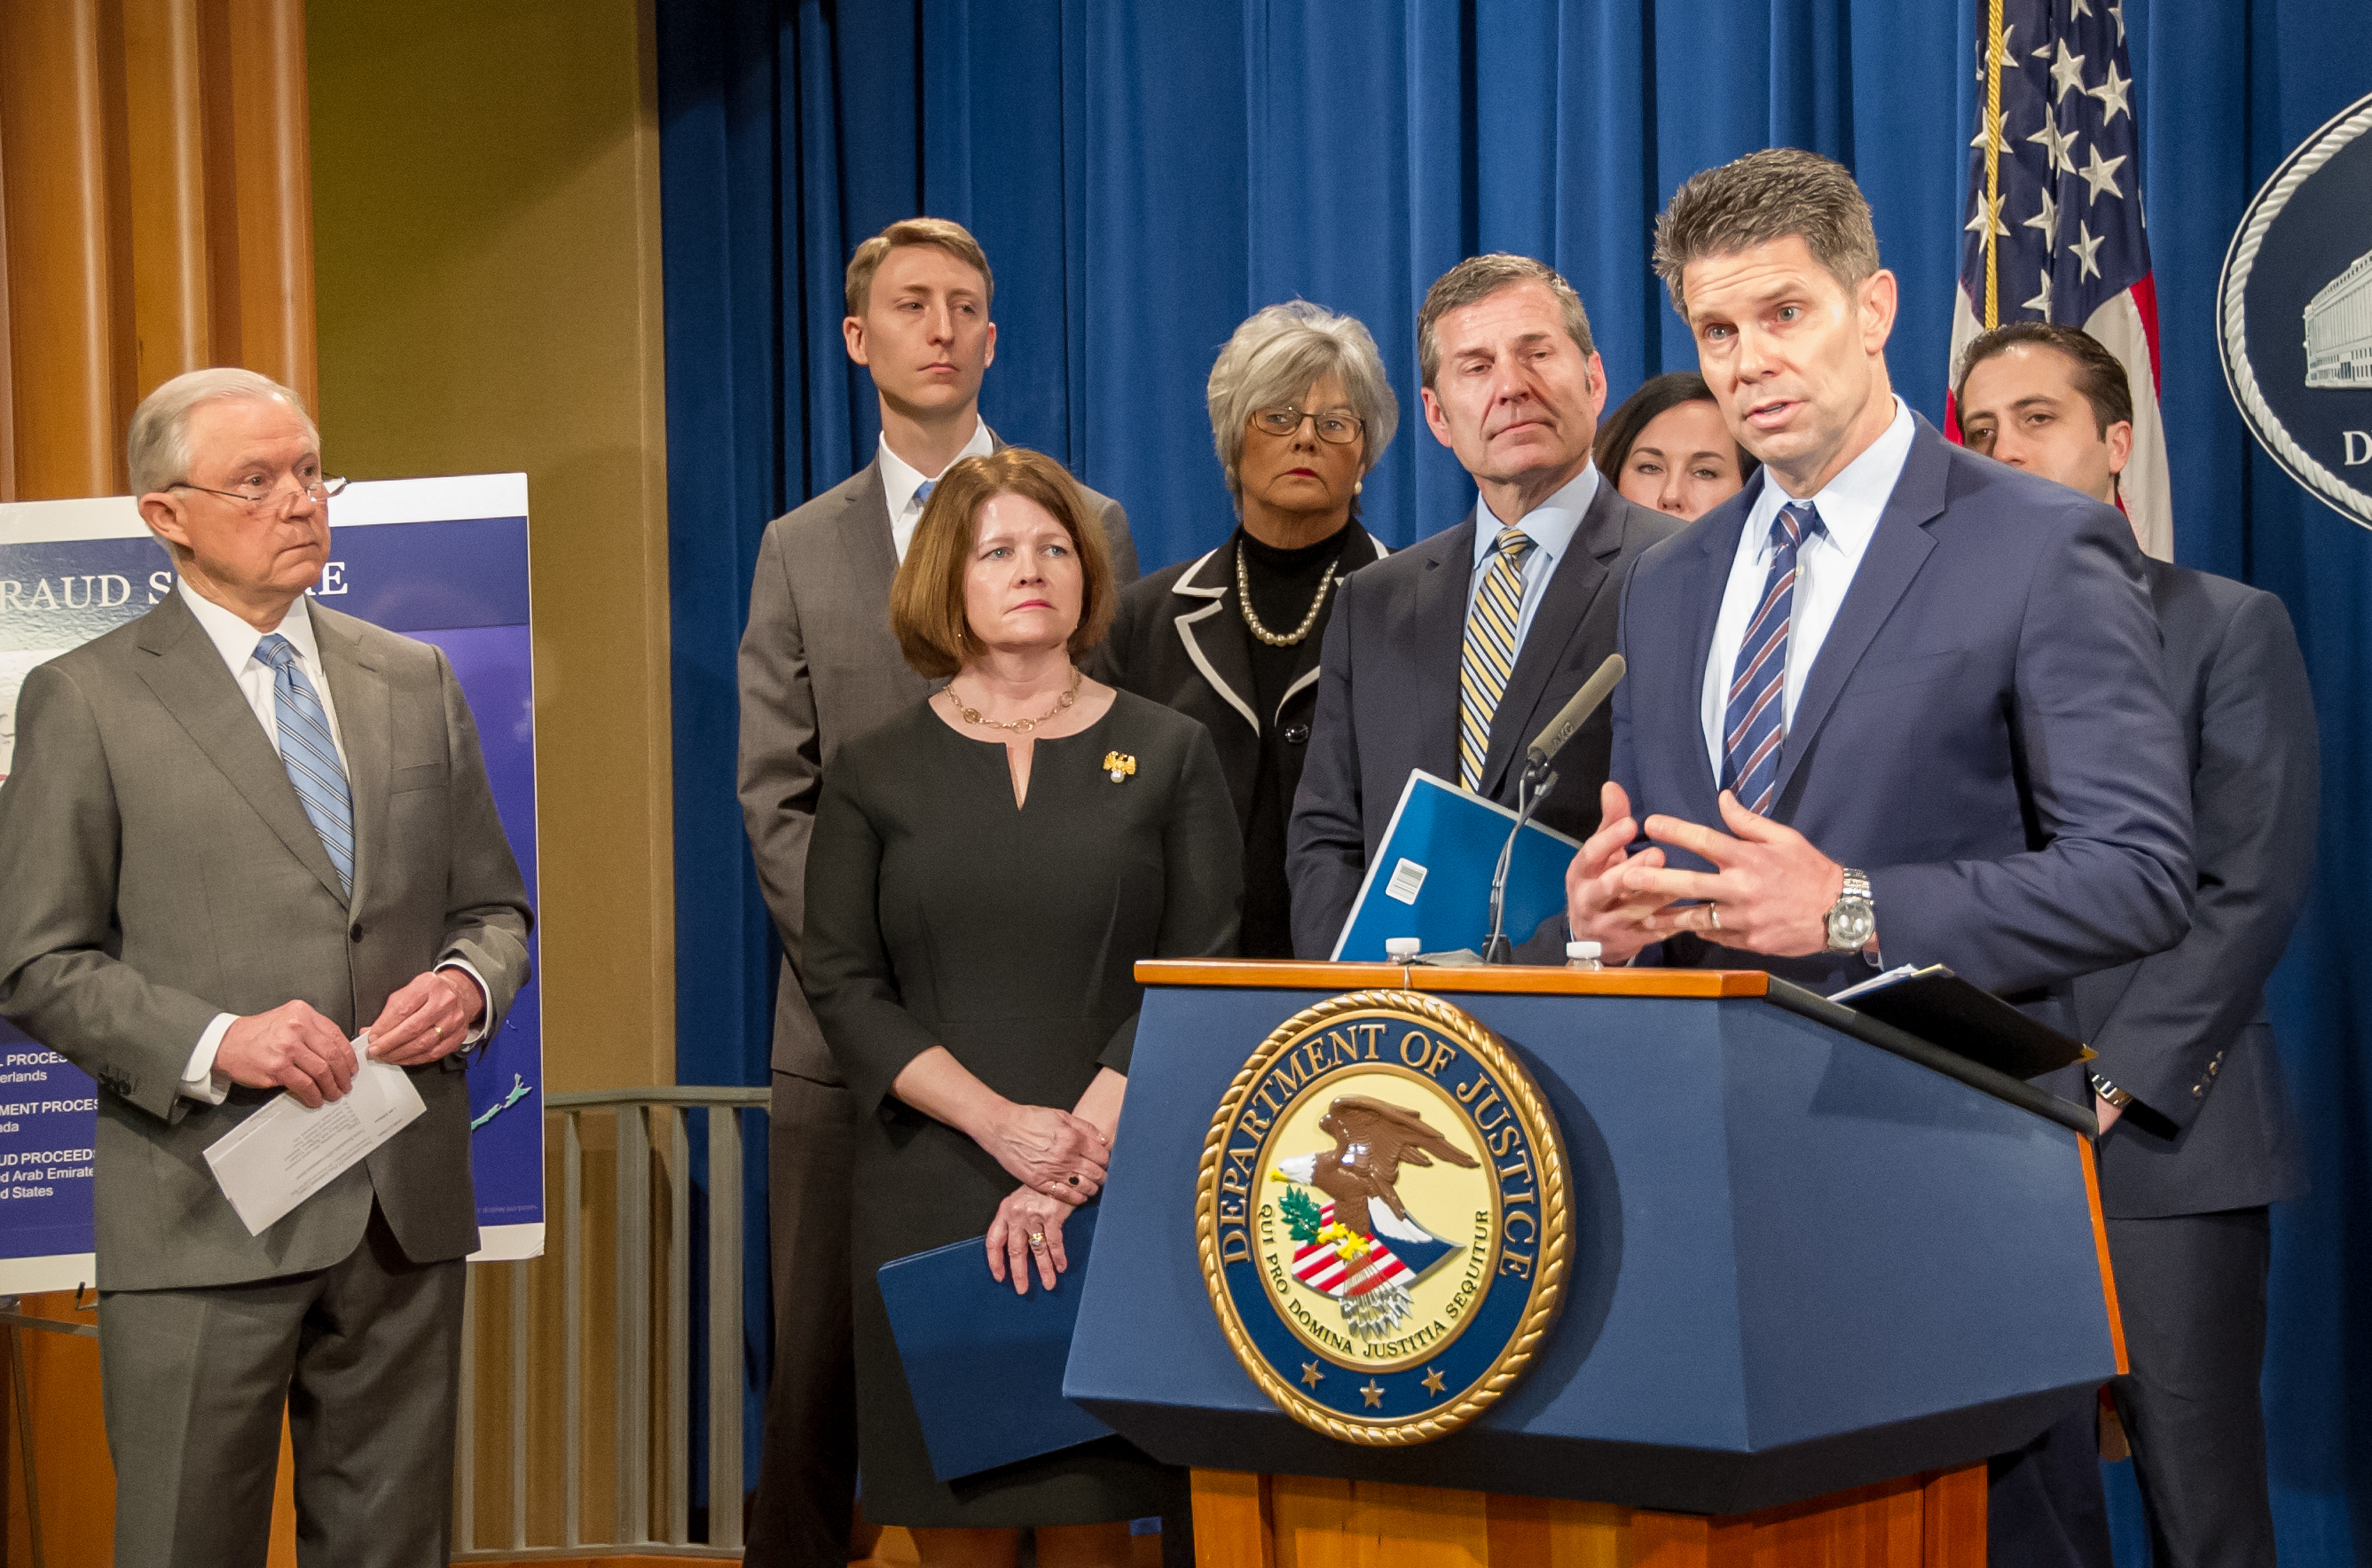 FBI Acting Deputy Director David Bowdich speaks at a February 22, 2018 press conference announcing elder fraud charges as Attorney General Jeff Sessions and others look on.